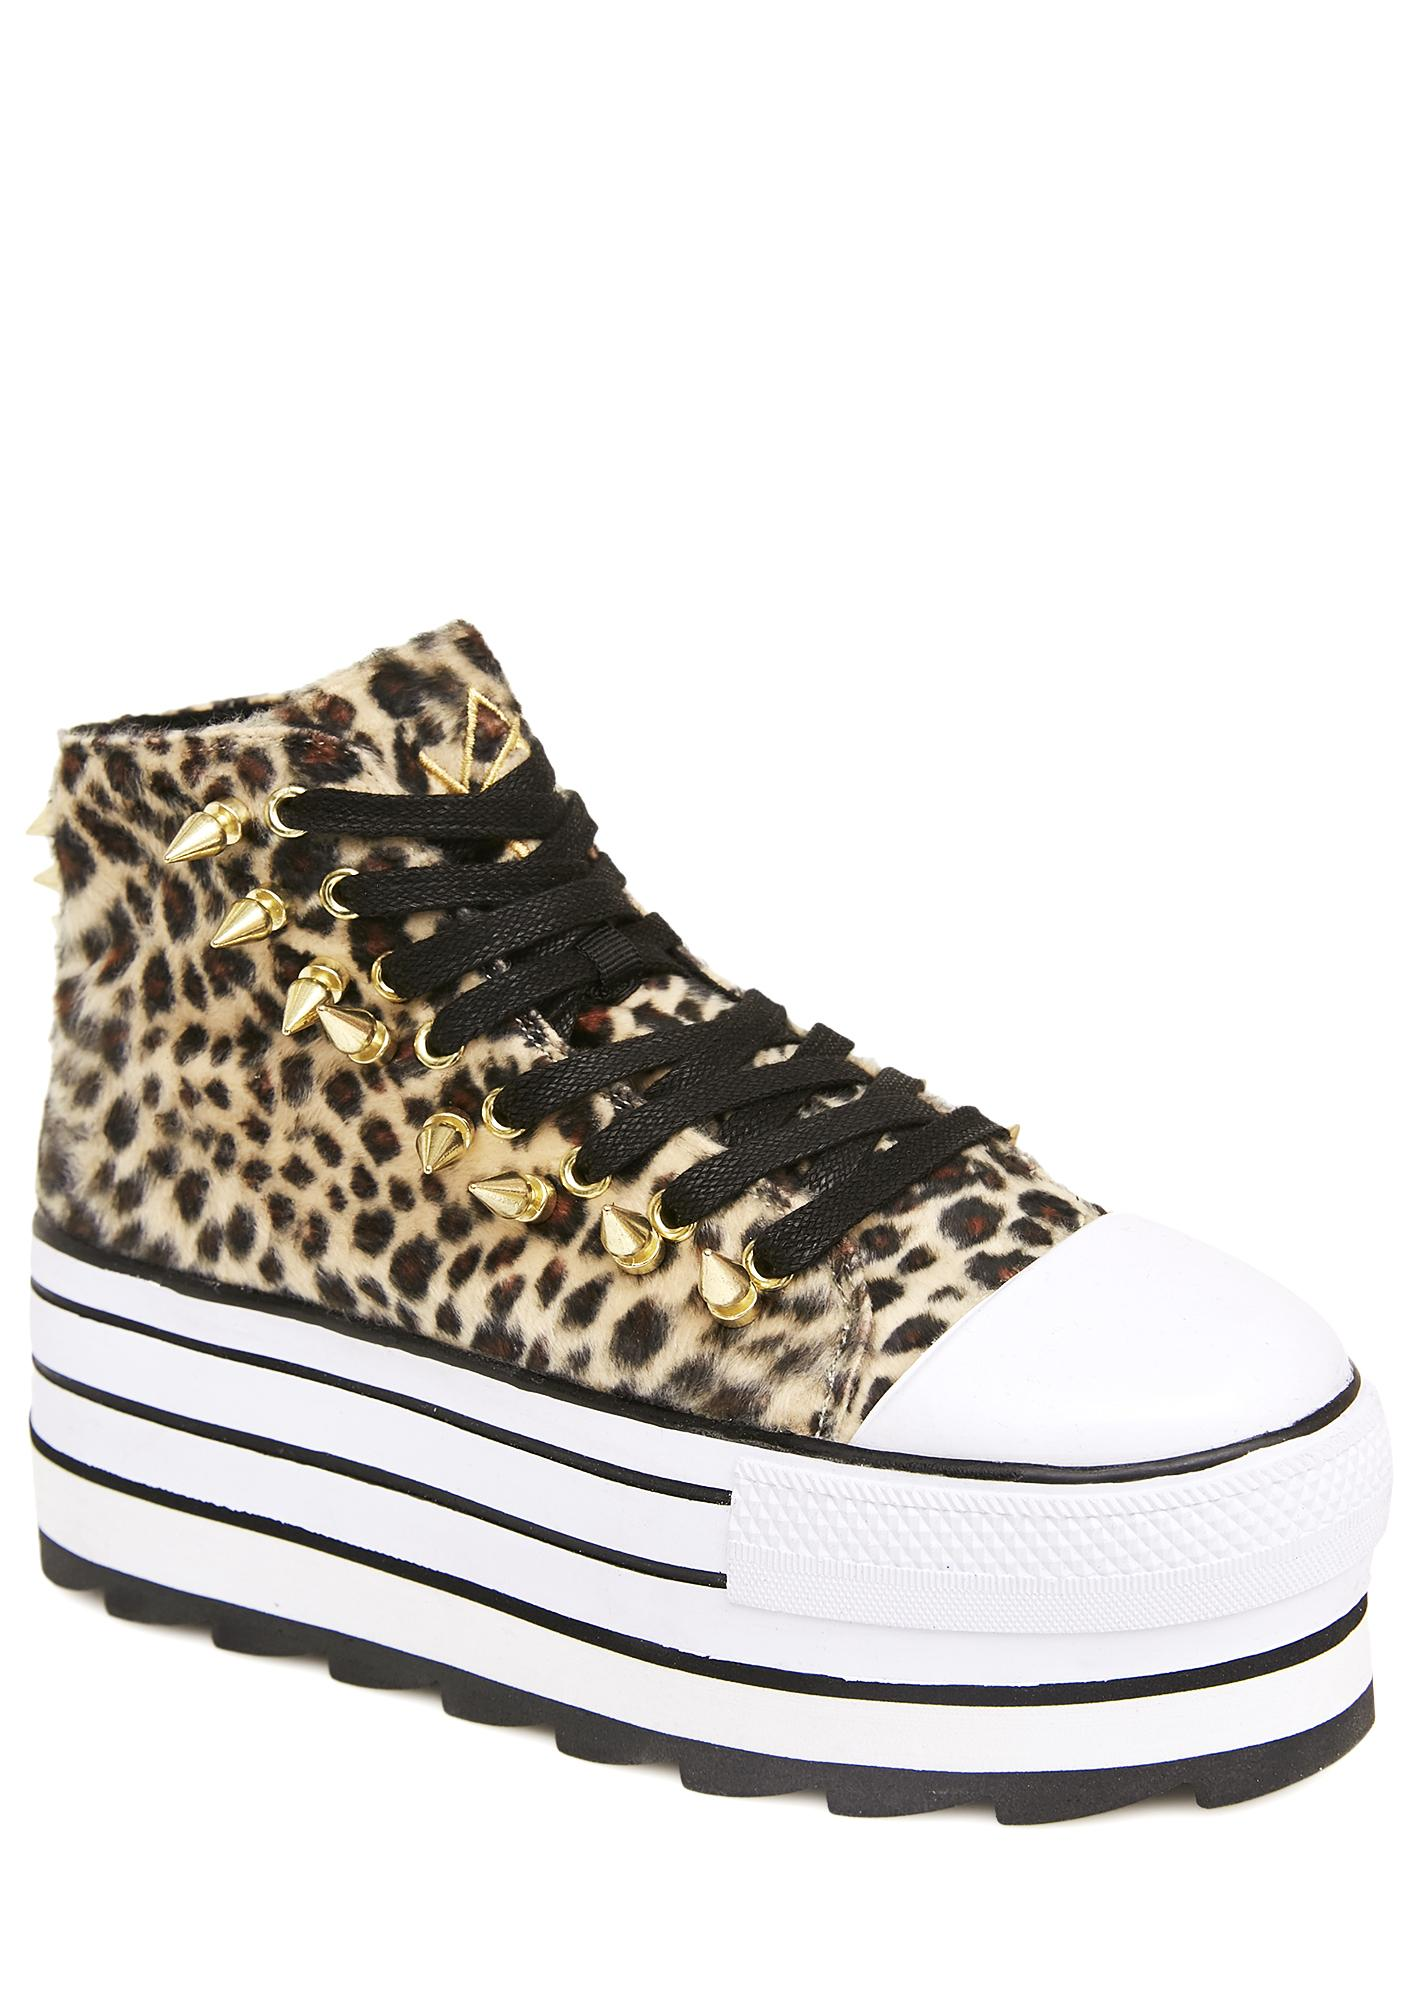 Y.R.U. Elevation Leopard Platform Sneakers